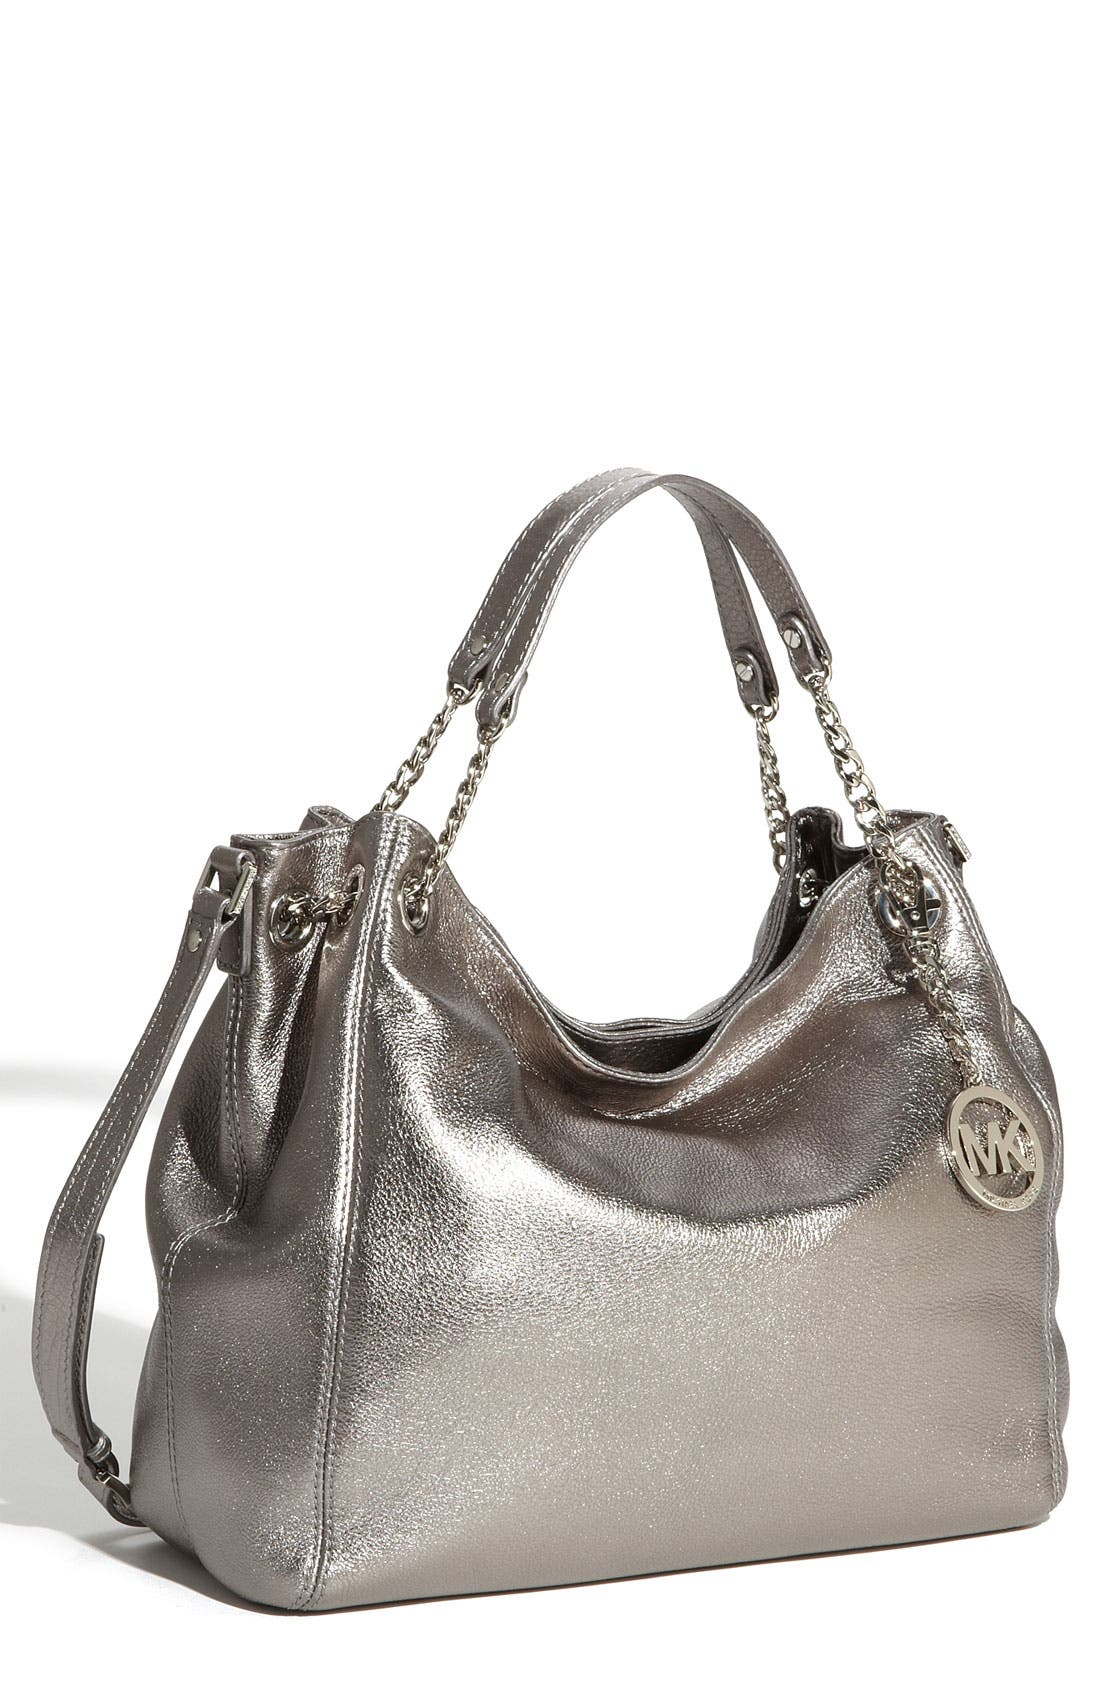 Main Image - MICHAEL Michael Kors 'Jet Set - Large' Metallic Leather Shoulder Tote